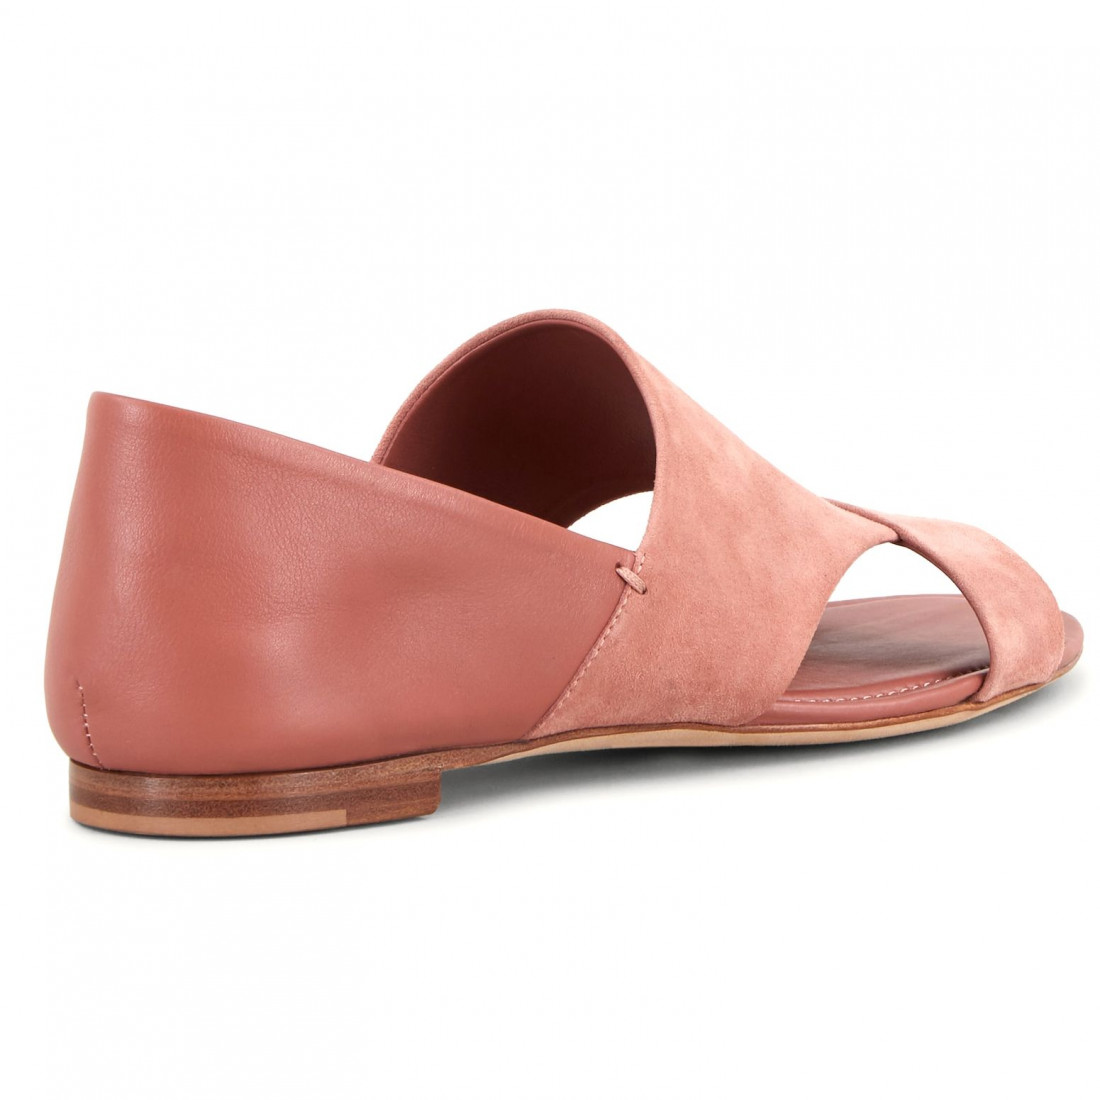 sandals woman tods xxw37b0at70kpnm026 4546